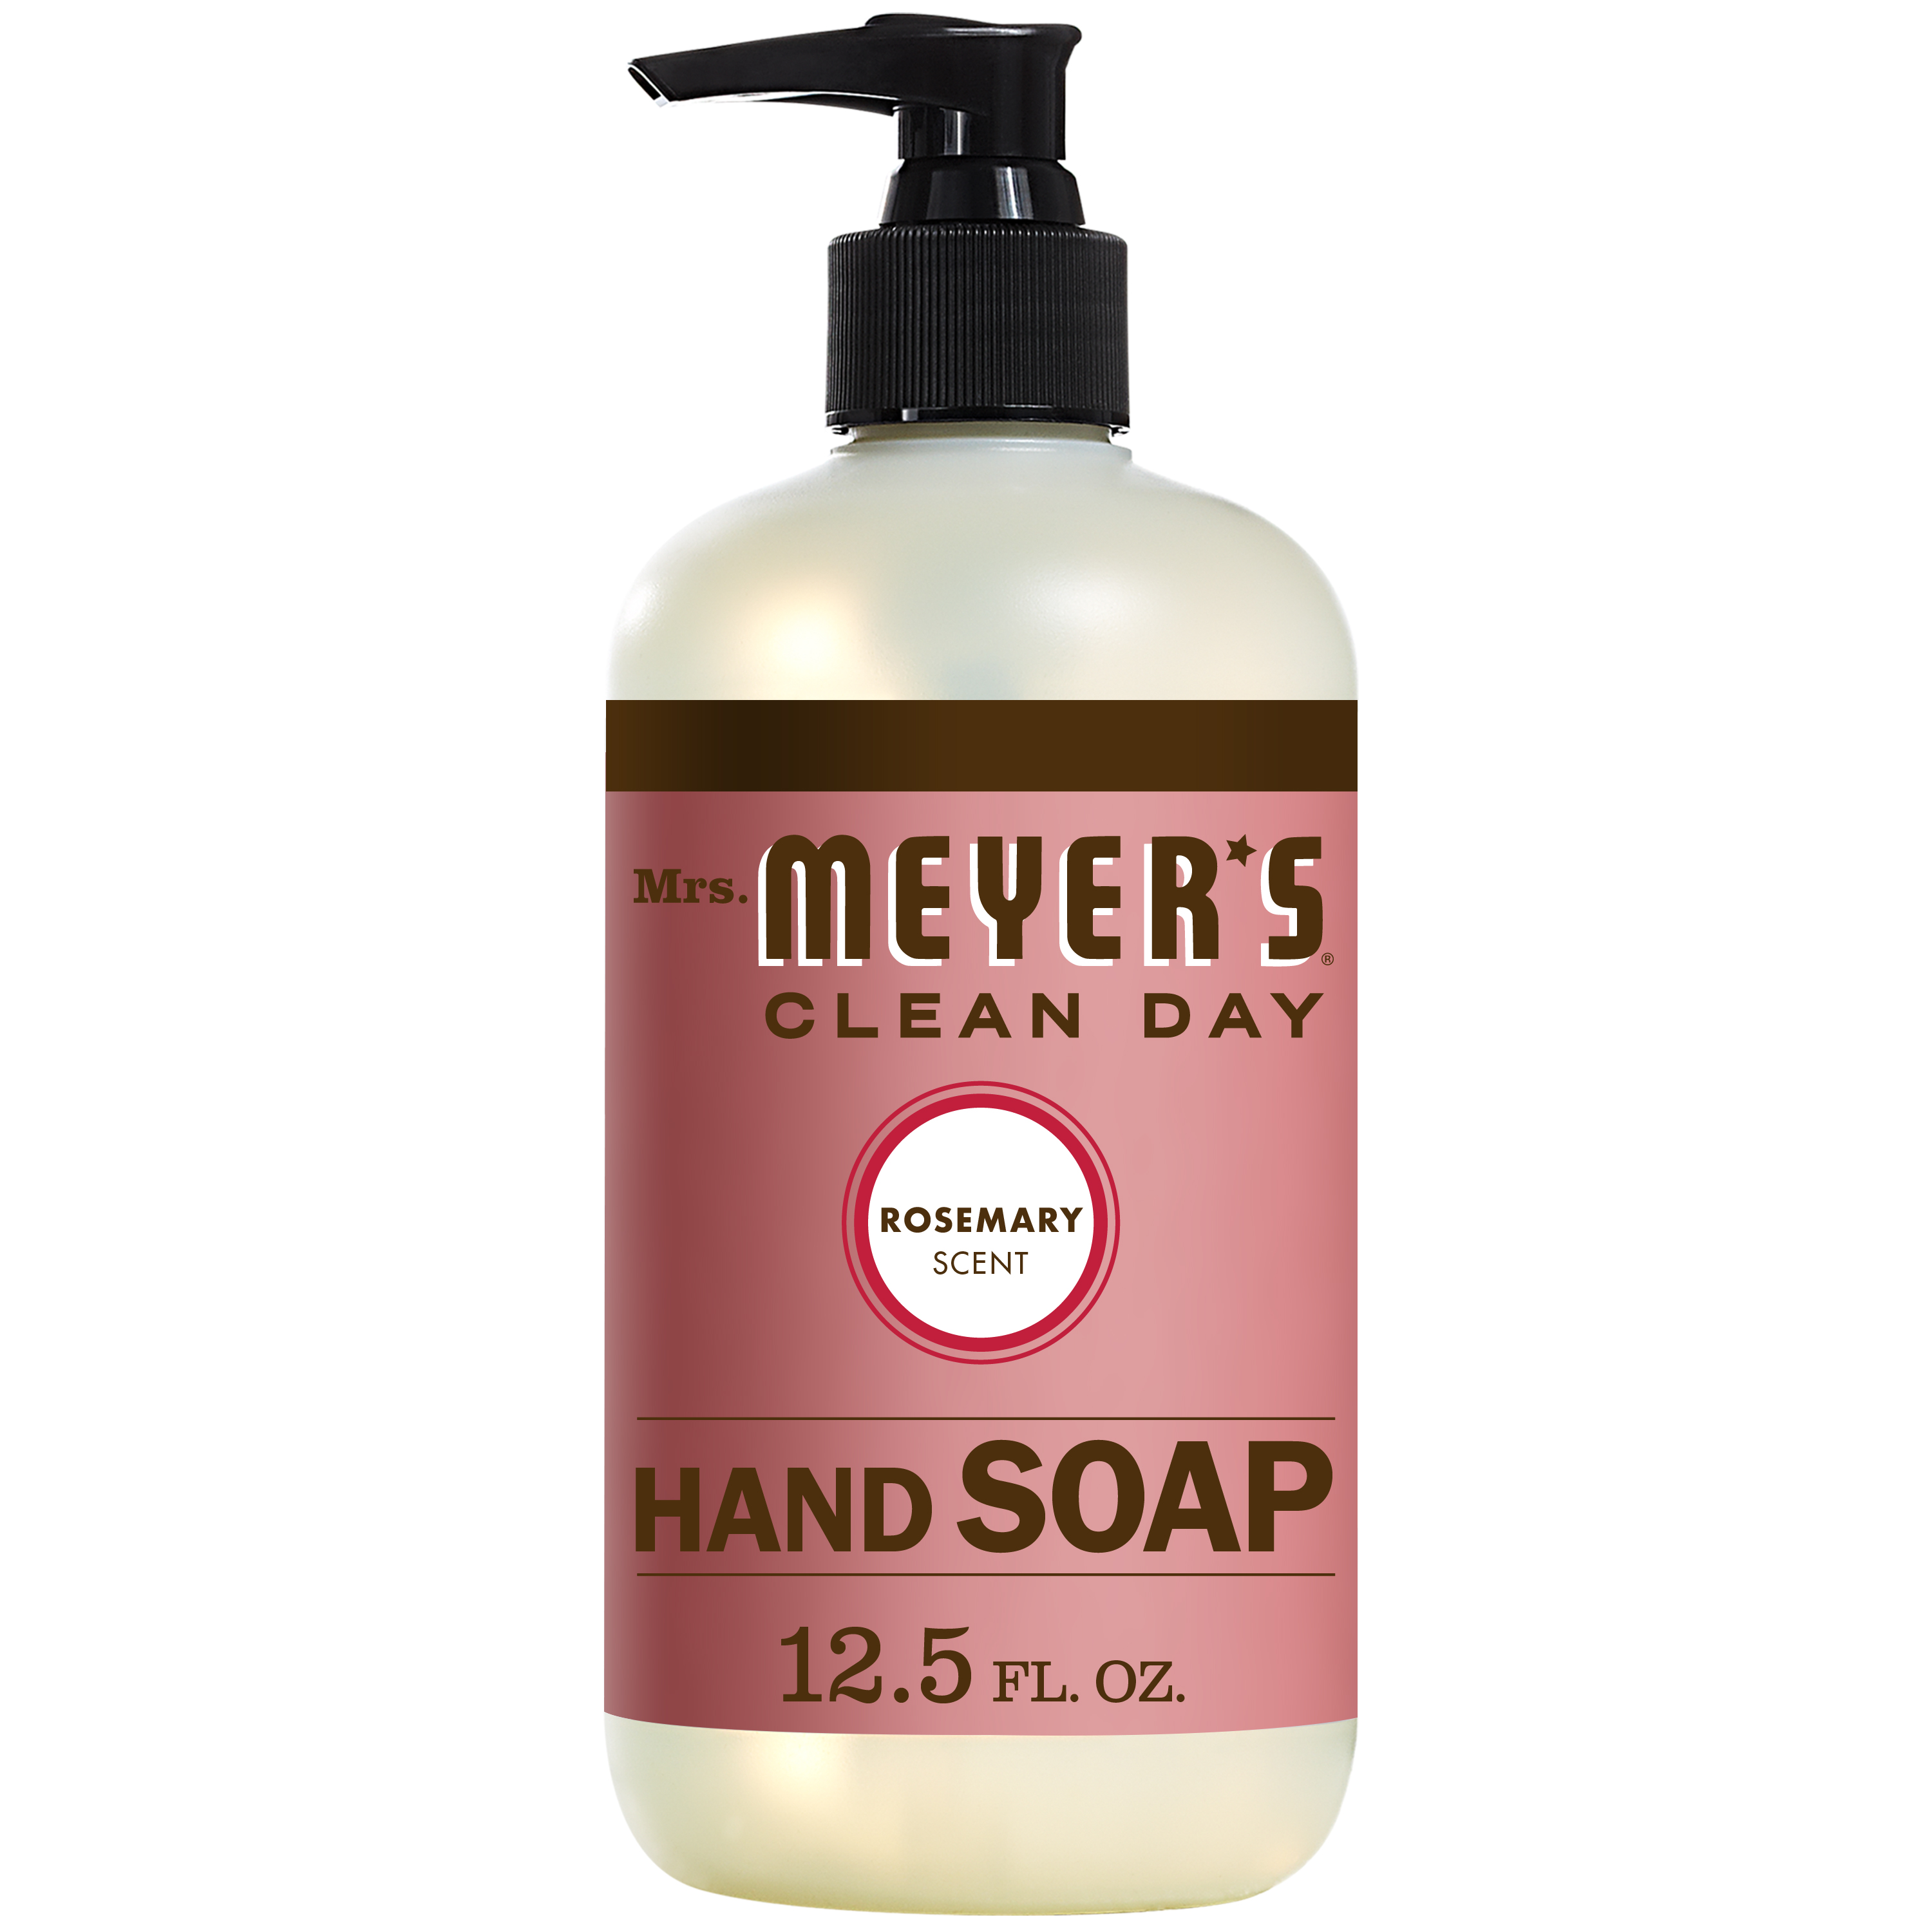 (3 Pack) Mrs. Meyer's Clean Day Liquid Hand Soap, Rosemary, 12.5 Oz